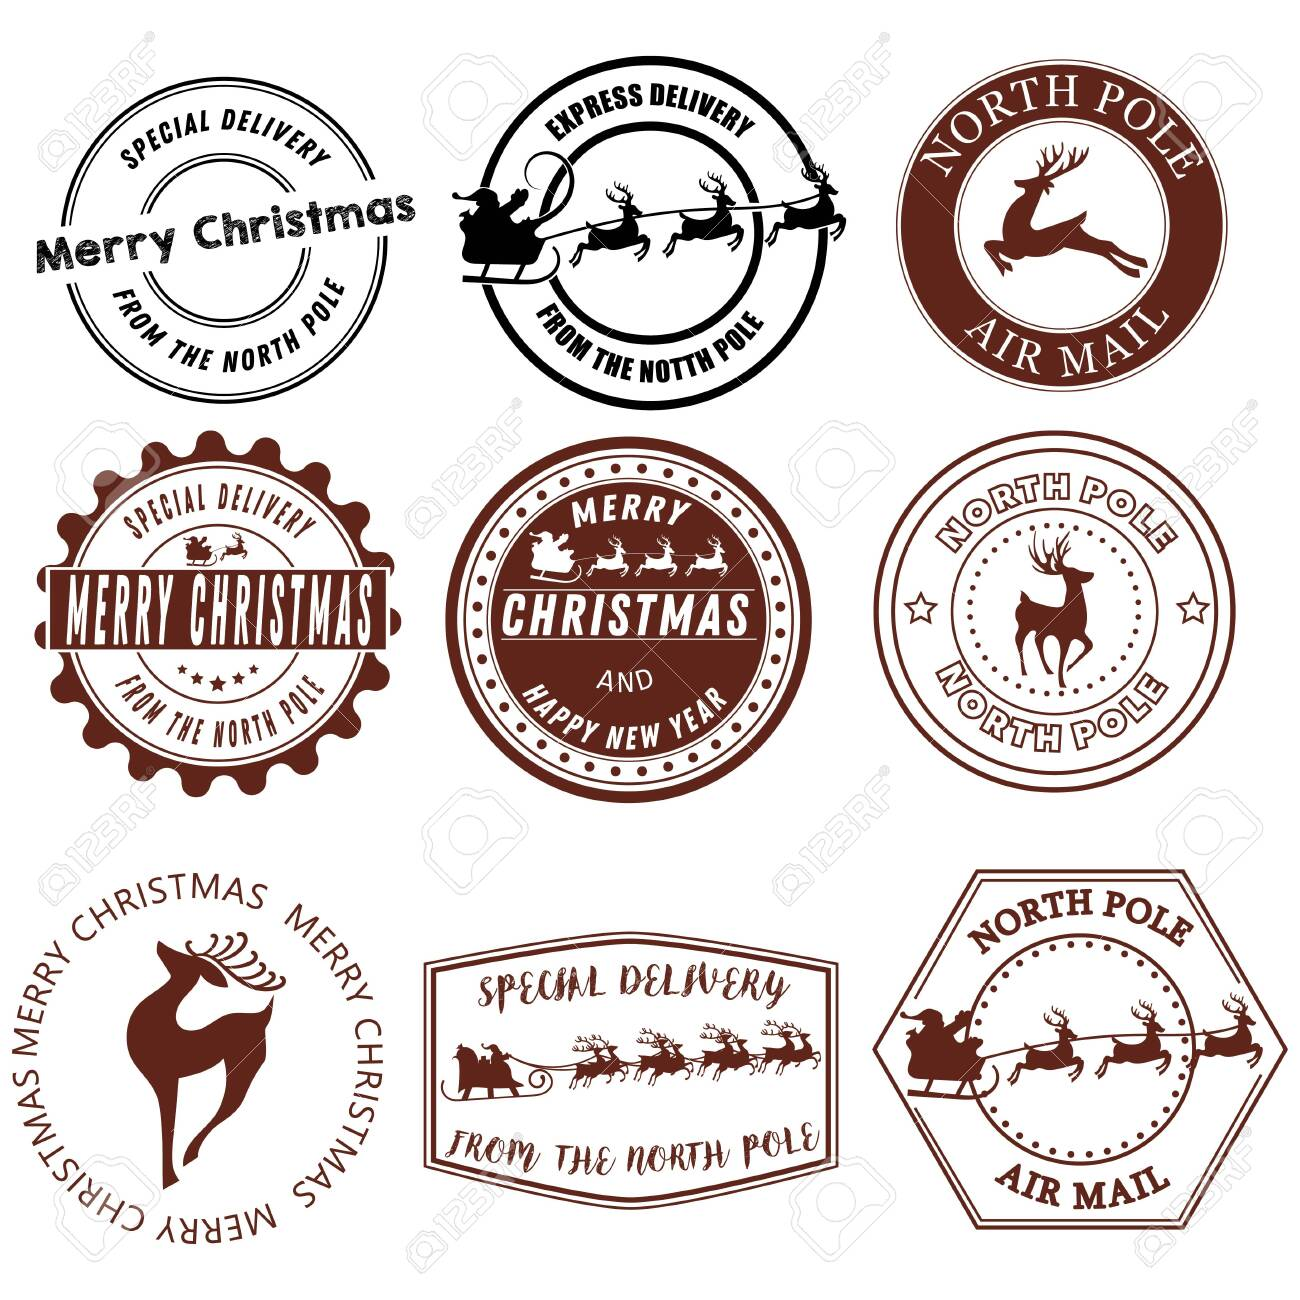 Set of Santa Claus signs. Collection of stamps of the North Pole. Vector illustration of stamps for mail. Christmas Signs. Drawing for children. - 130017262